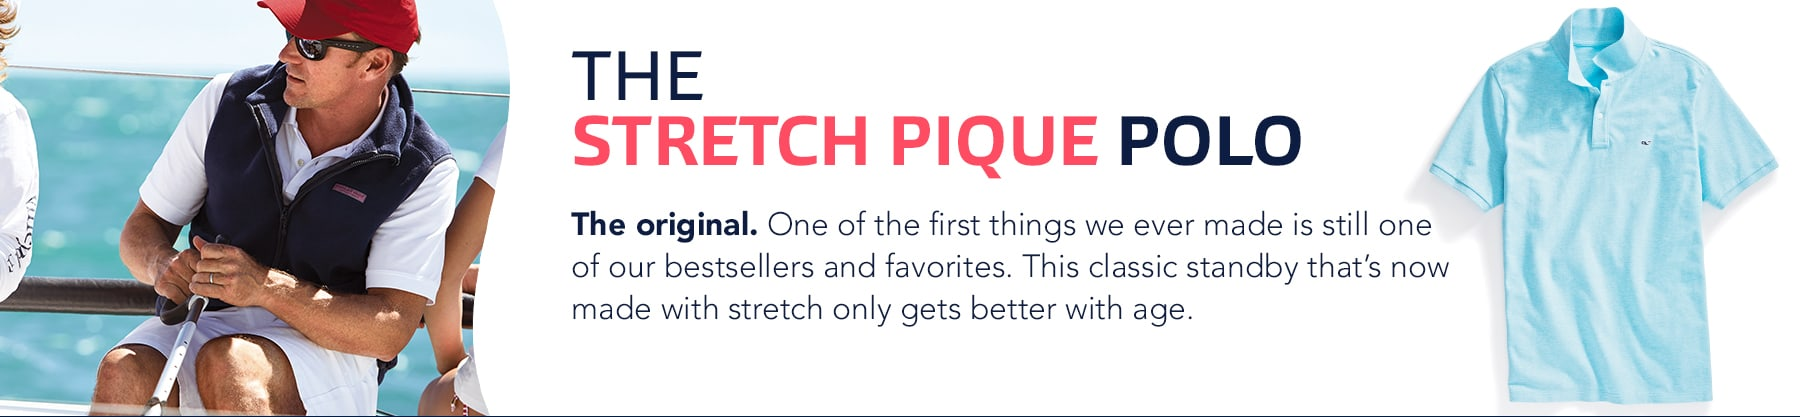 The stretch pique polo. The original. One of the first things we ever made is still one of our best sellers and favorites. This classic standby that's now made with stretch on;y gets better with age.